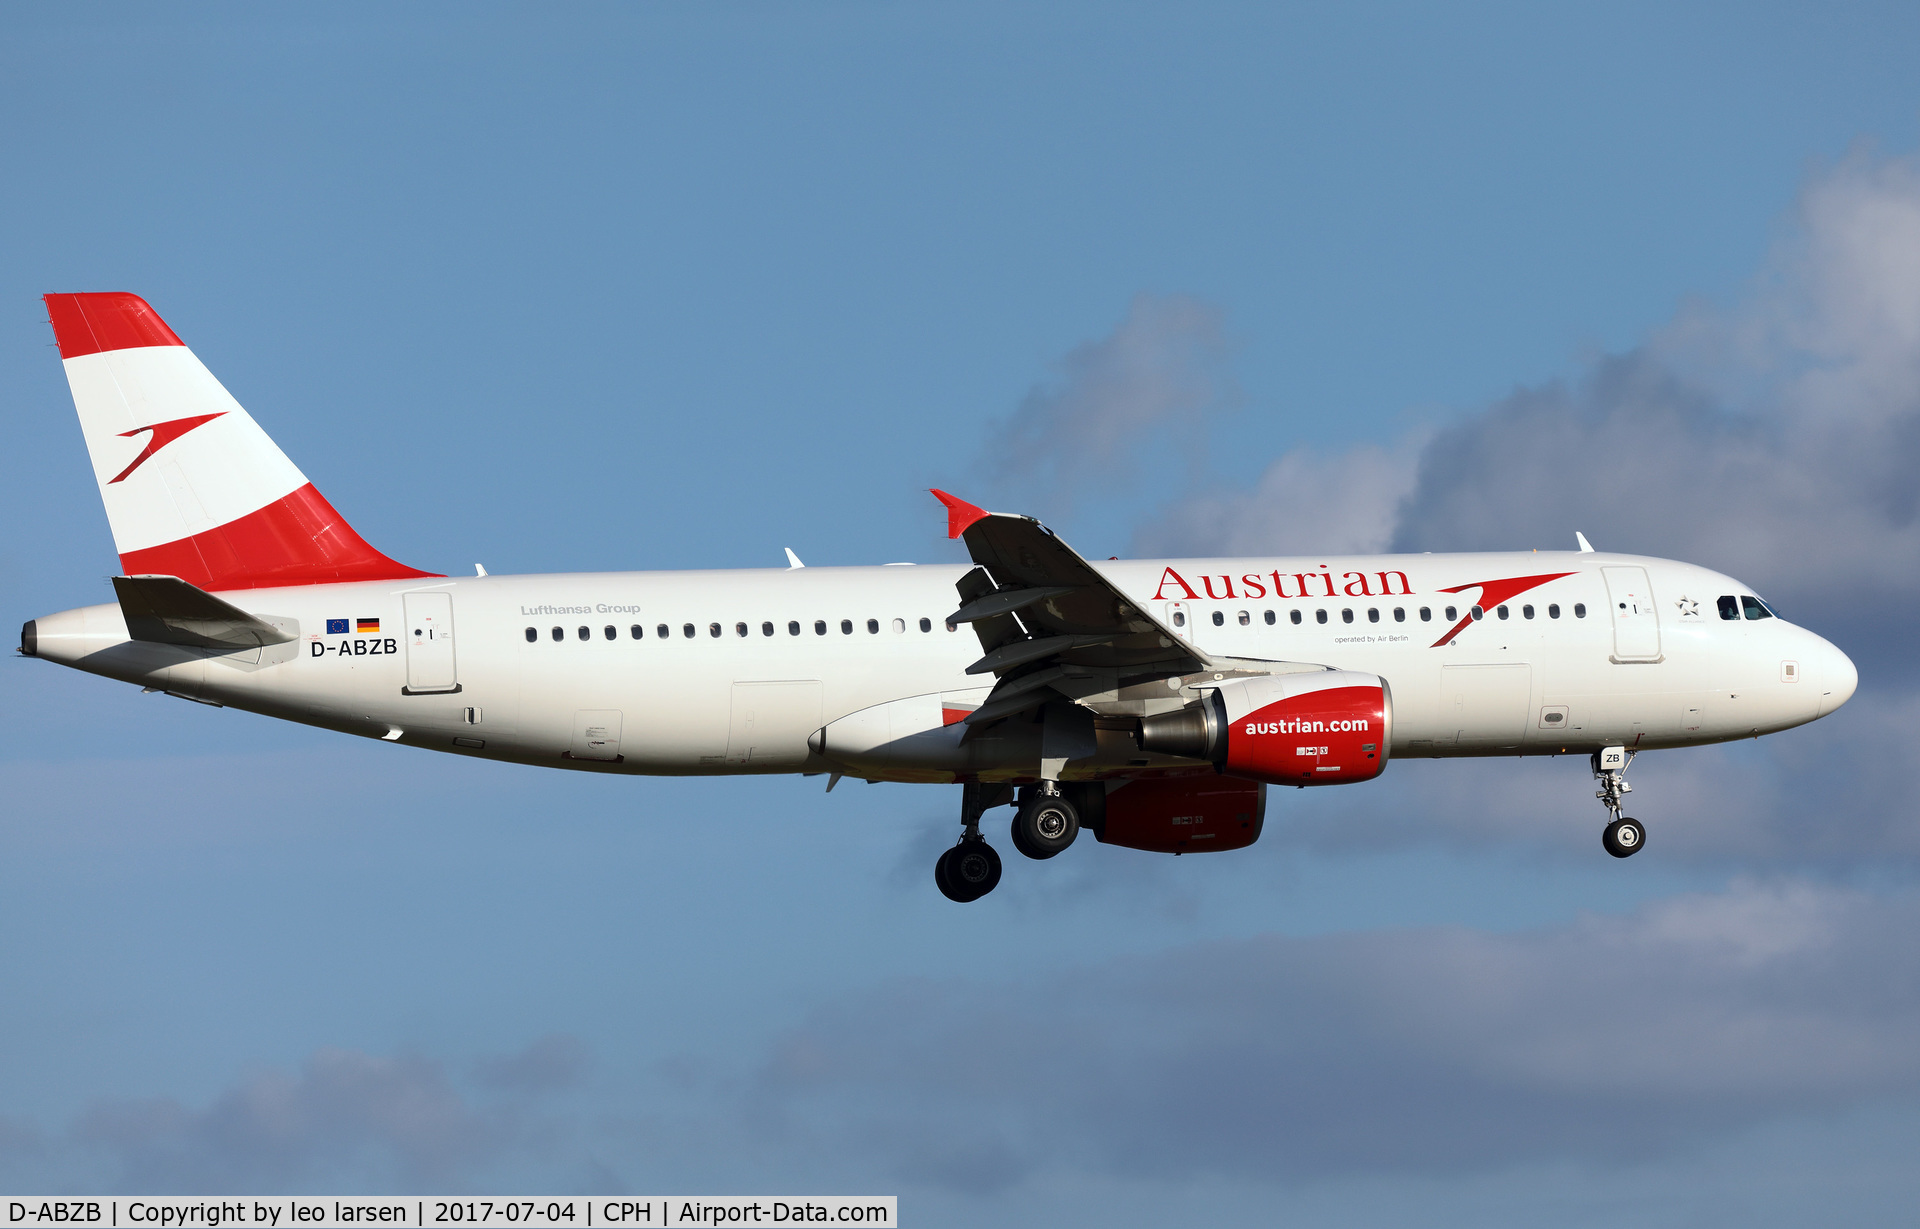 D-ABZB, 2008 Airbus A320-216 C/N 3515, Copenhagen 4.7.2017 now in service with Austrian